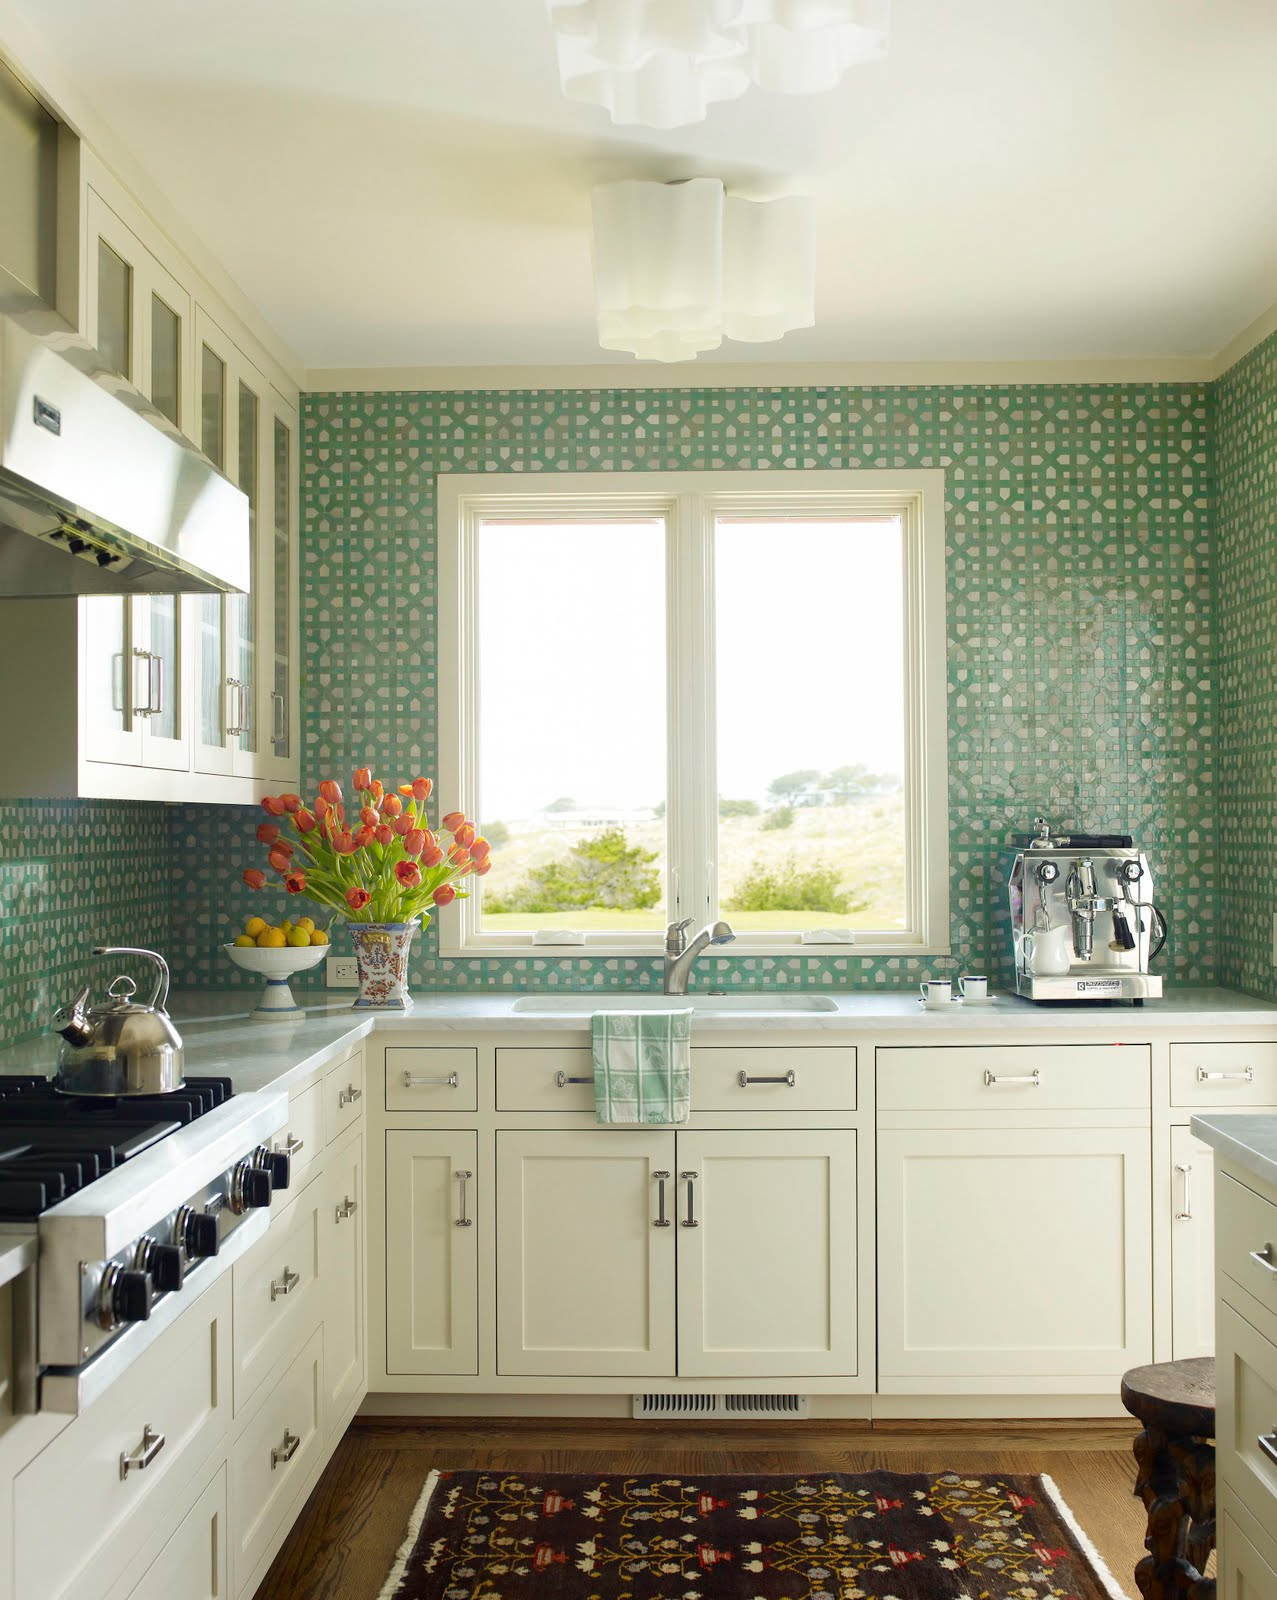 Kitchen Tile Mosaic Ideas